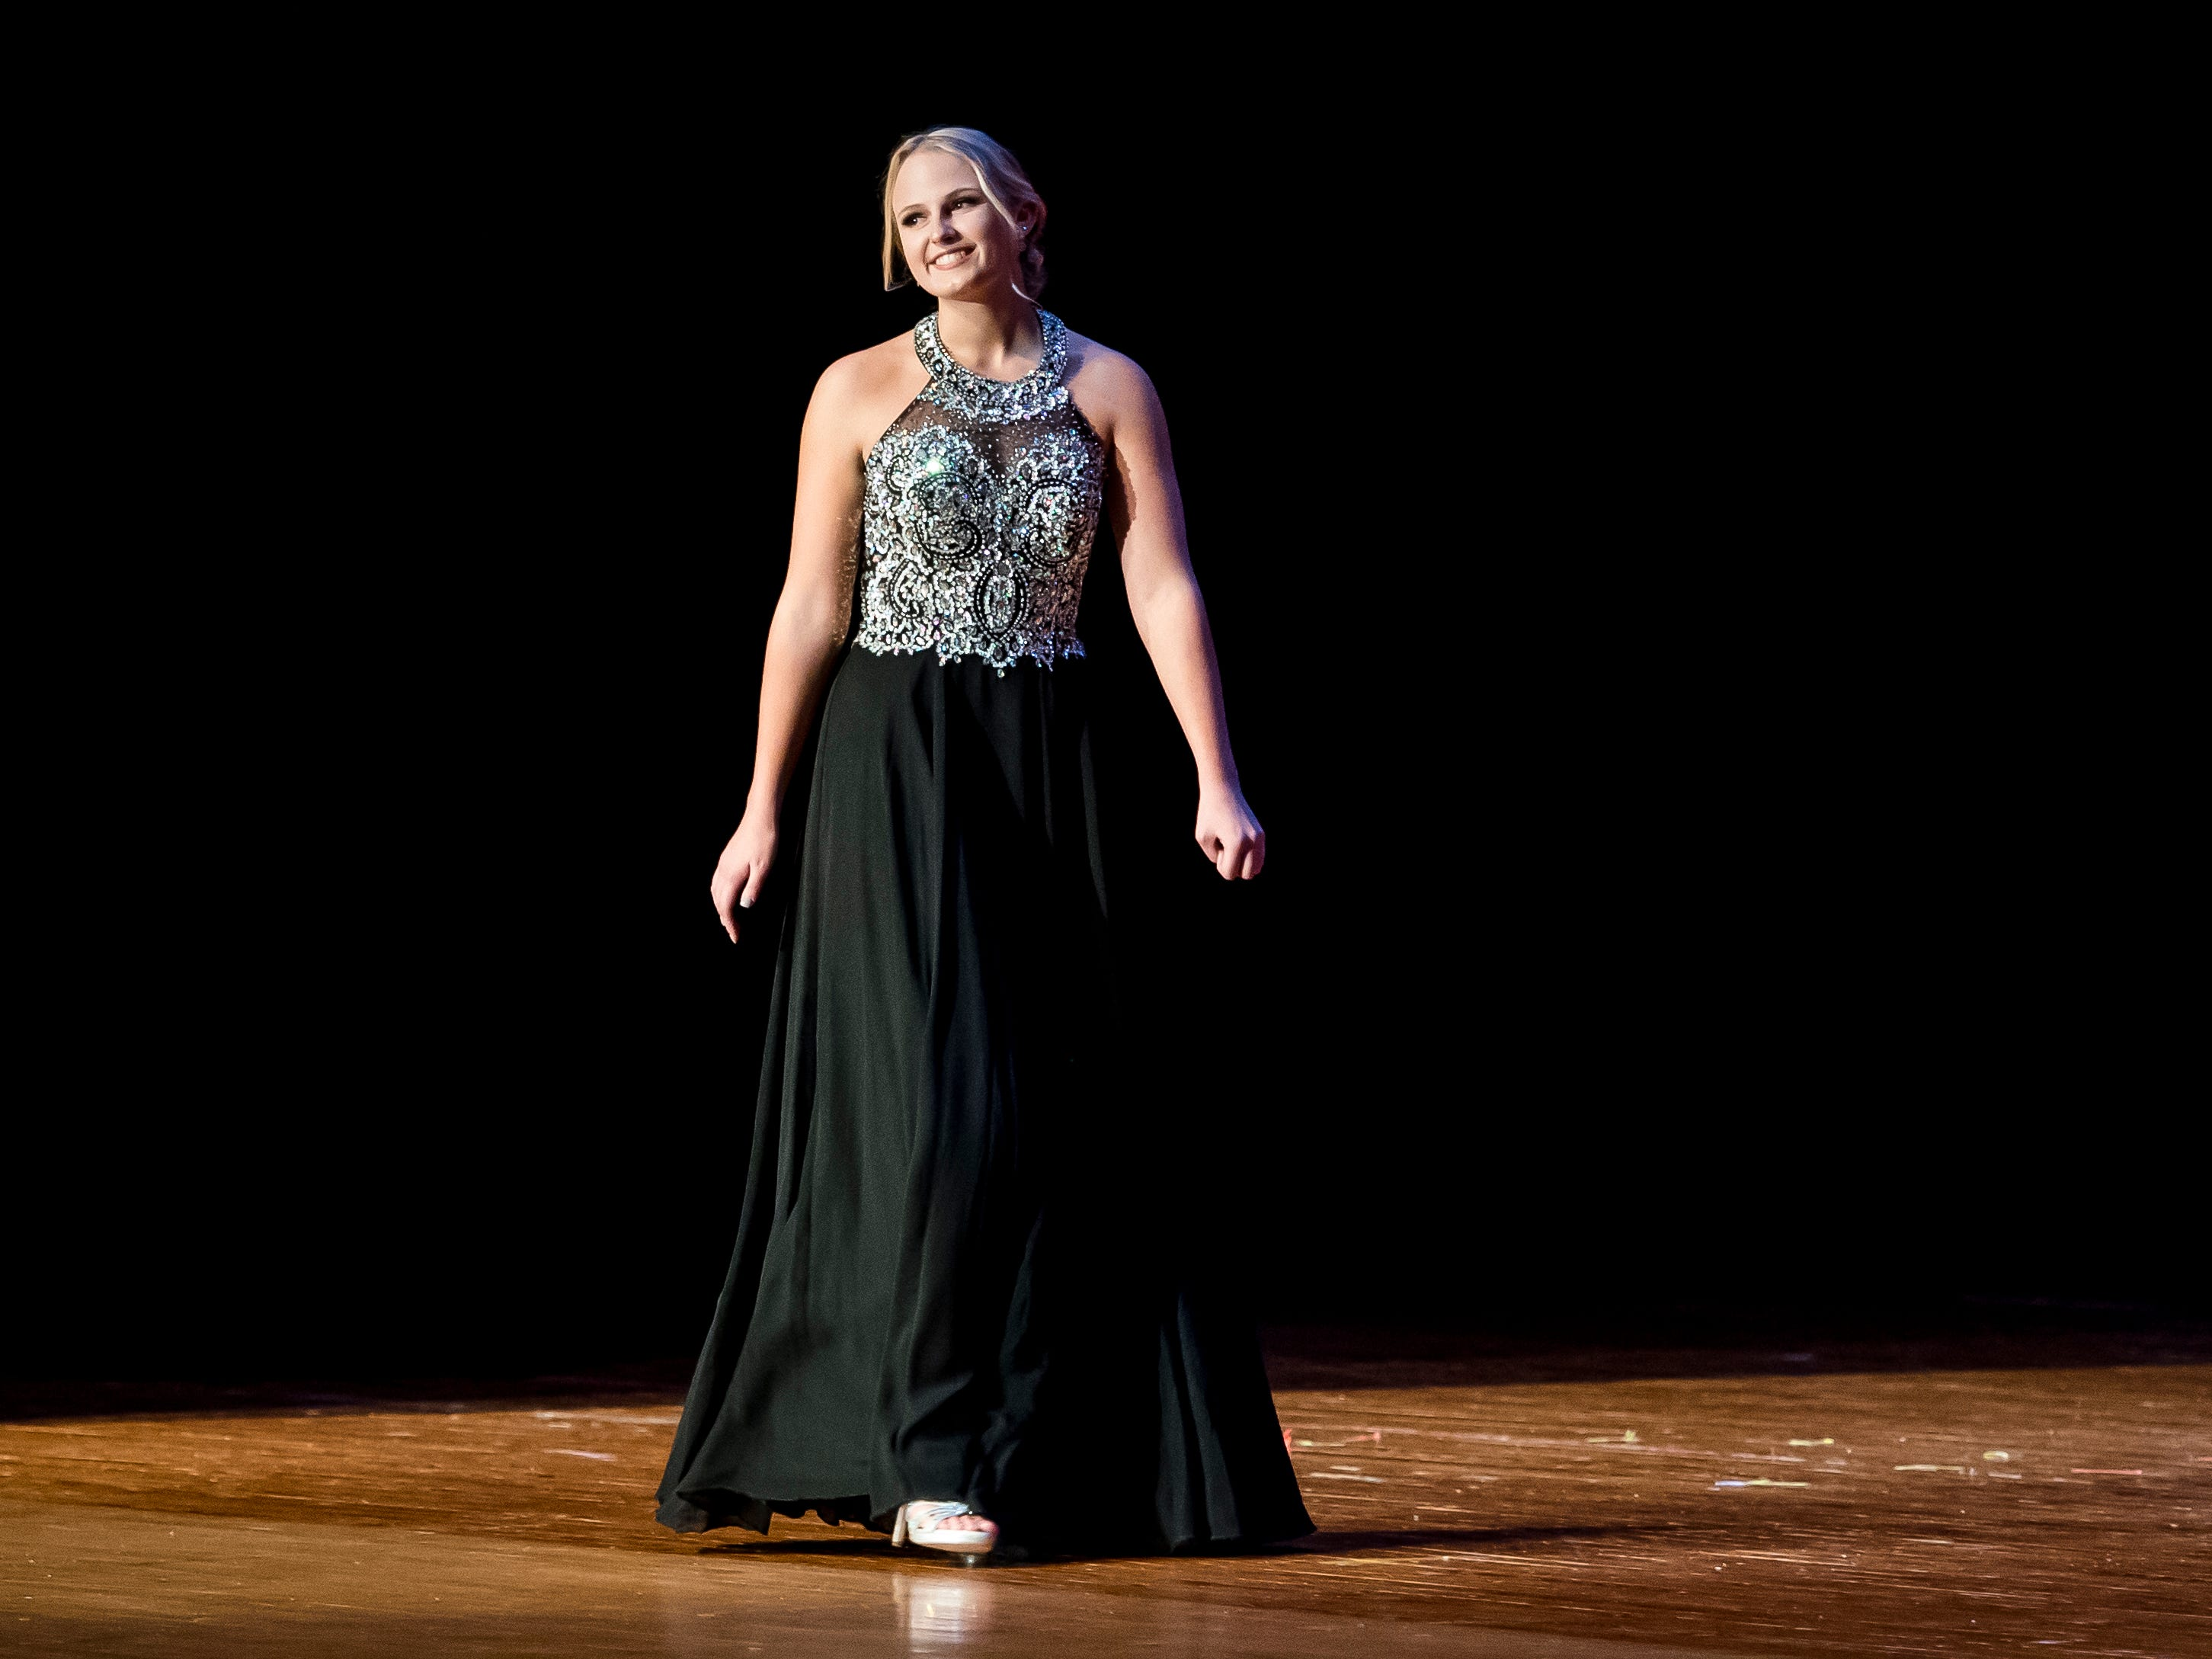 Cara Green walks on stage during the evening gown competition in the 50th Miss Hanover Area pageant on Monday, October 22, 2018.